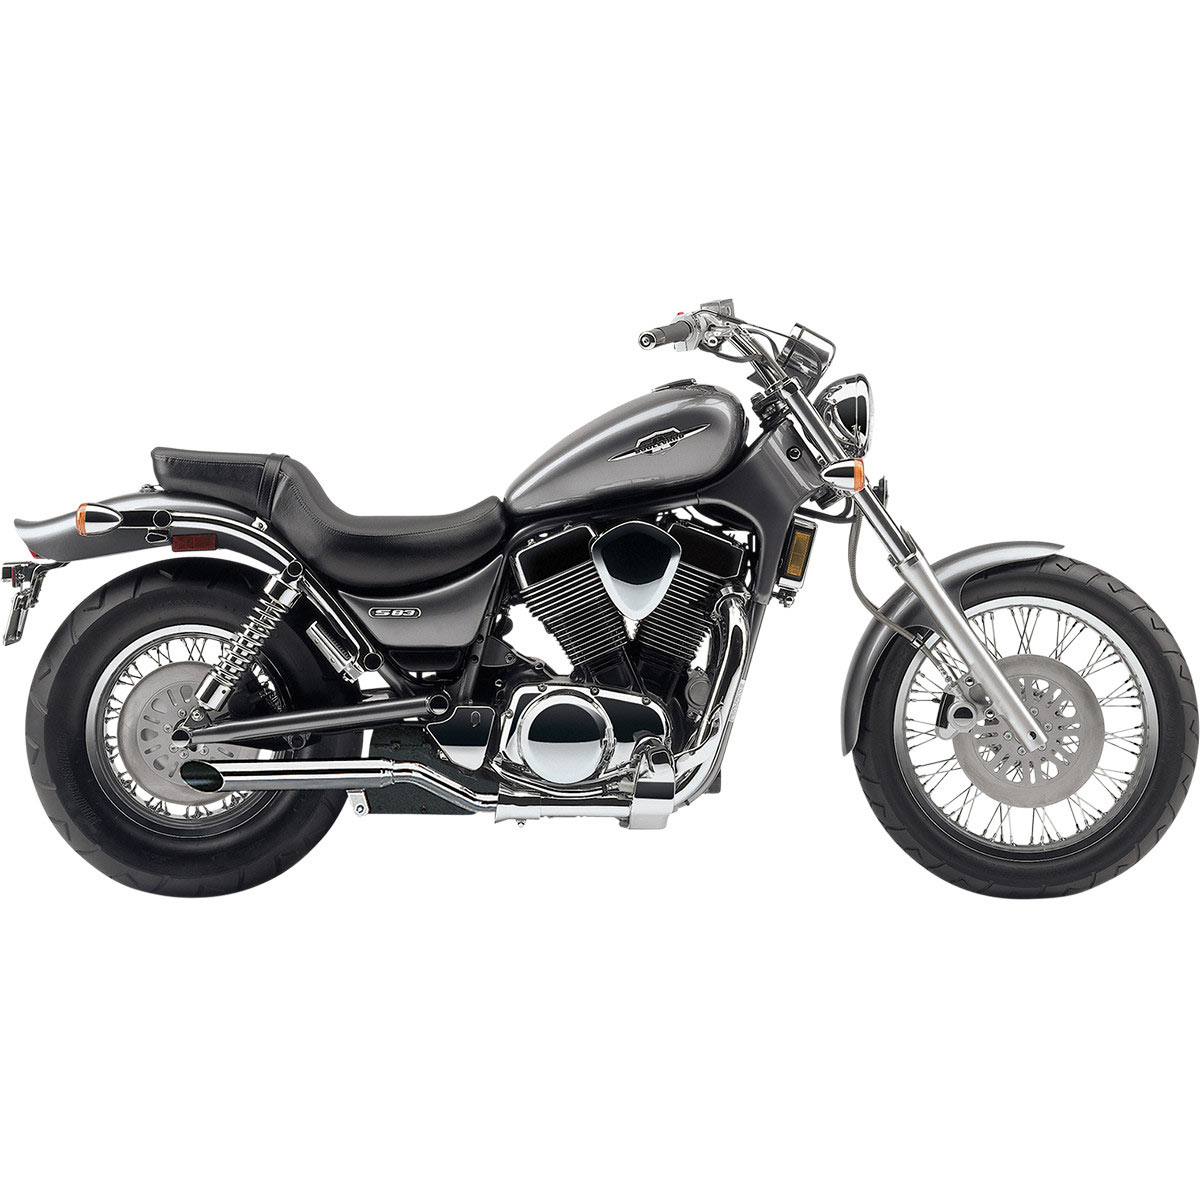 1988 Suzuki VS1400 Intruder Service Manual motorcycle